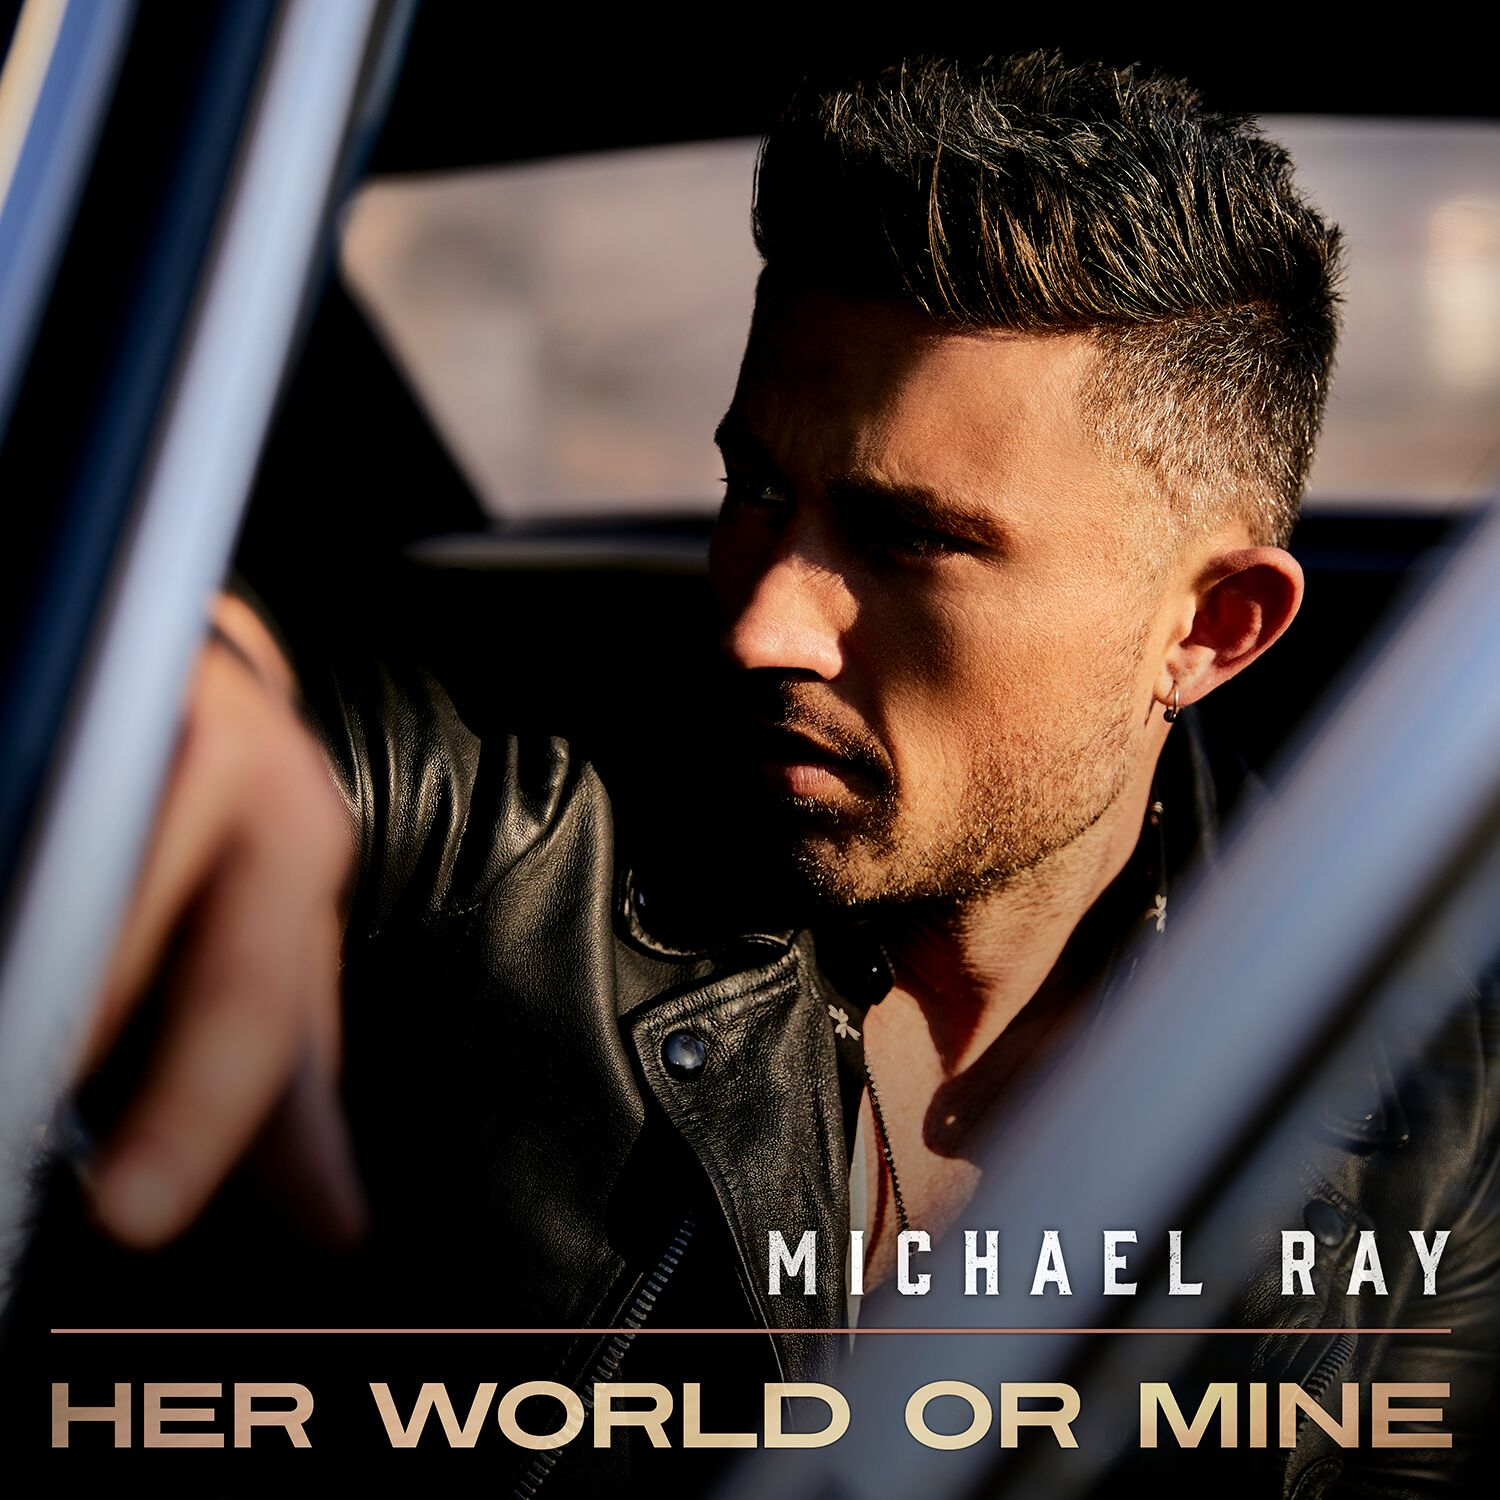 weekly spins - Country heartbreak at its best…Michael Ray delivers his best single yet.One of us sleeps goodOne of us hates to face the nightJust depends if you're talkin' aboutHer world or minePhoto credit: Jeff Nelson